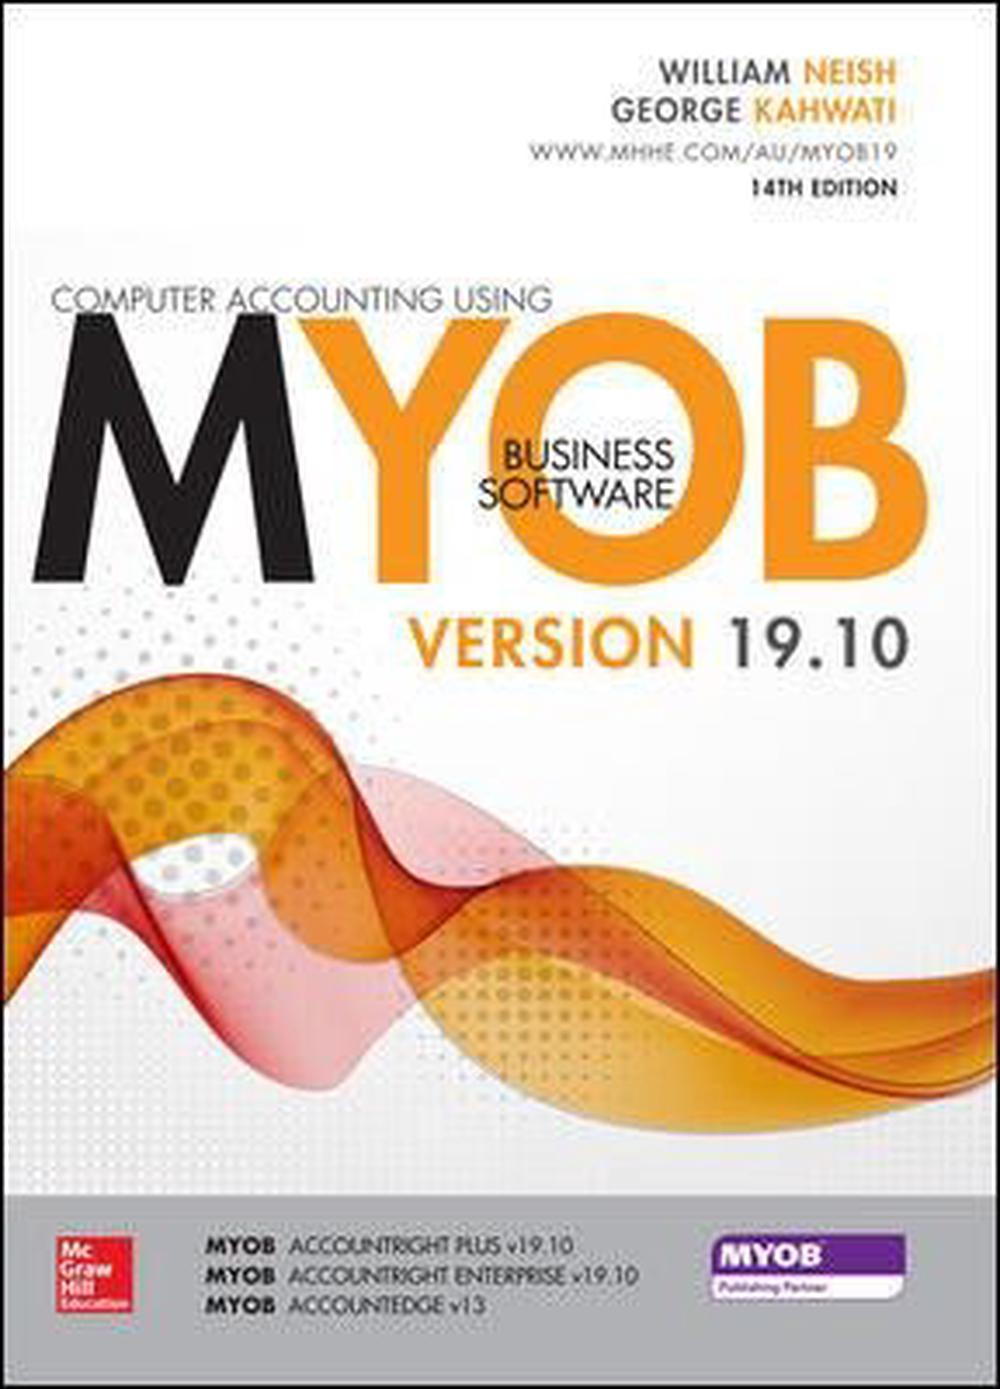 Computer Accounting Using Myob V19.10 by Neish and Kahwati, ISBN: 9781743077474